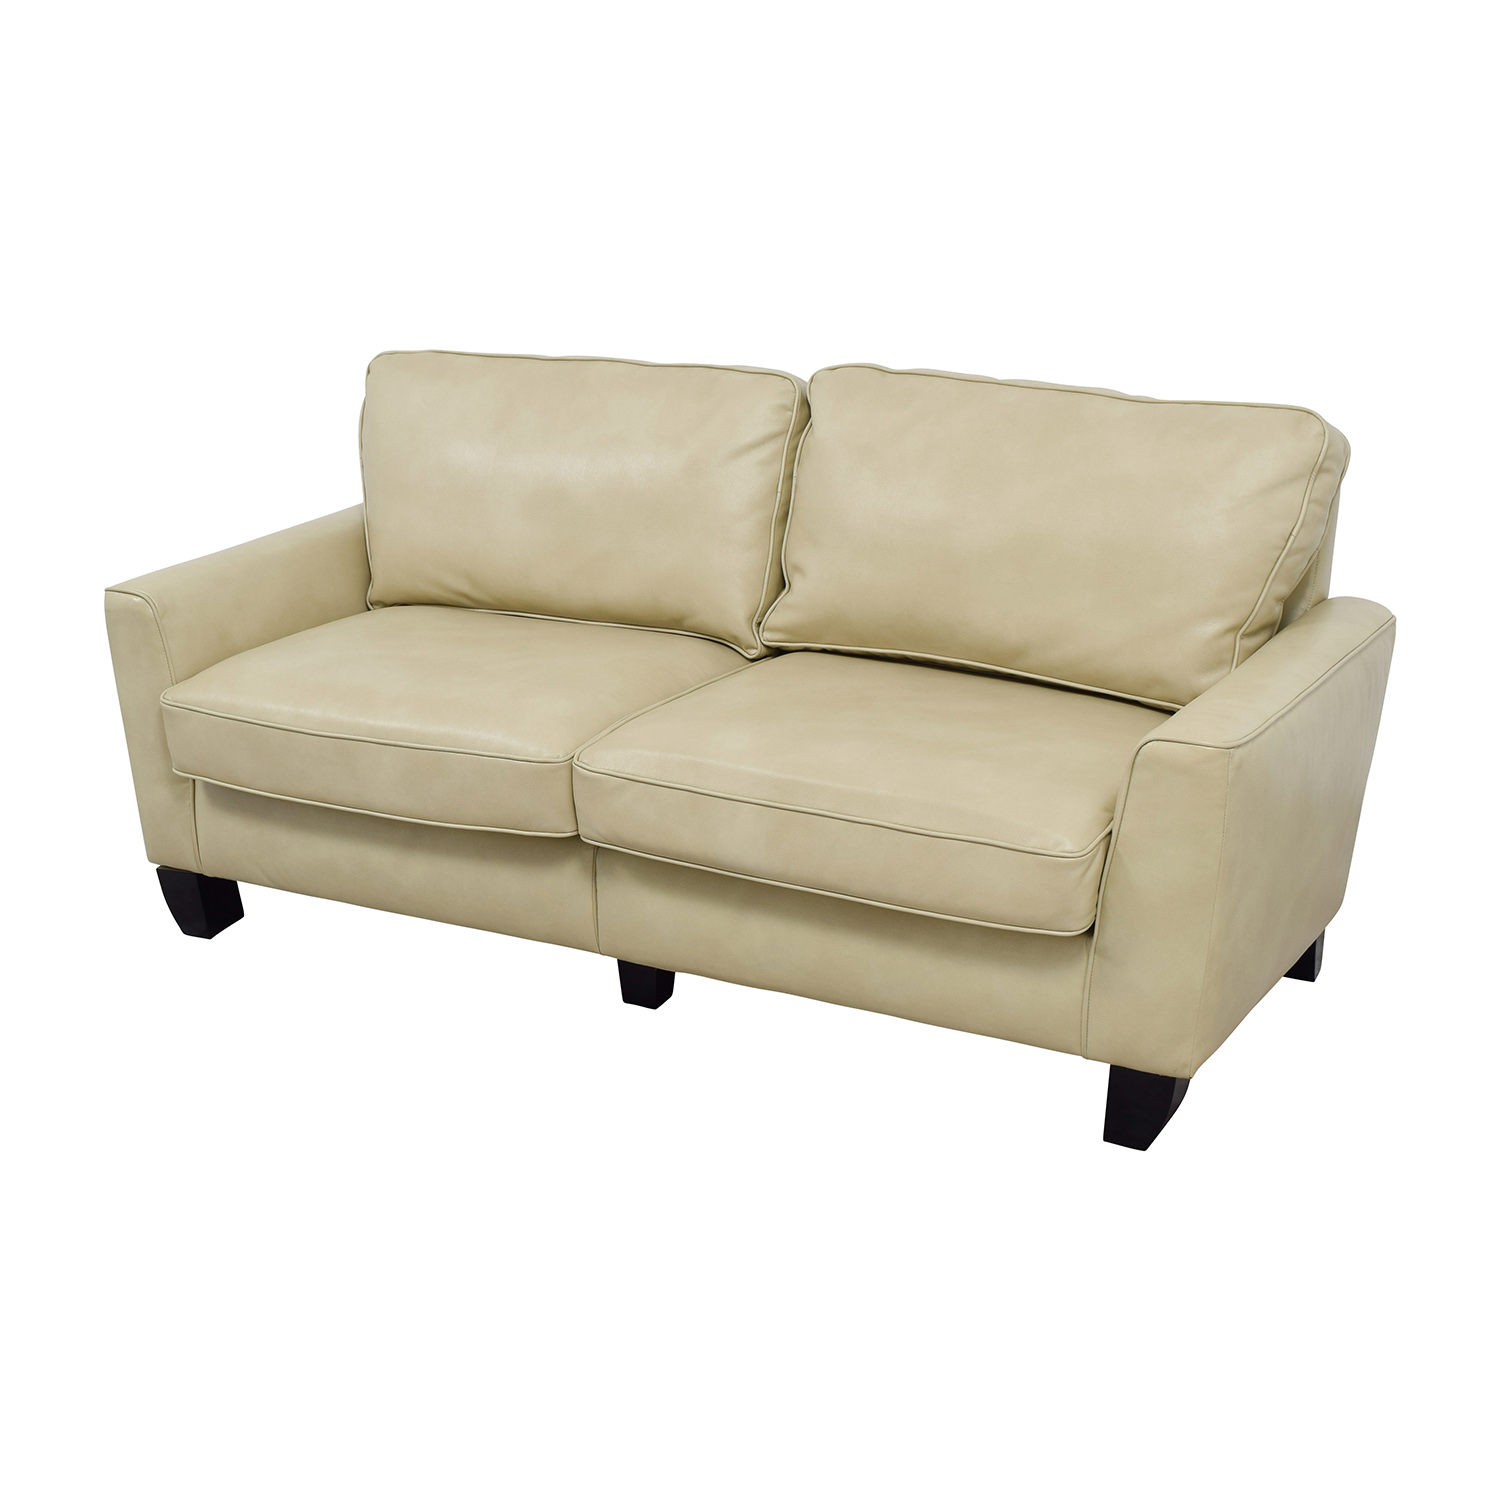 ... Serta Serta Astoria Coated Fabric Sofa In Cannoli Cream Nyc ...